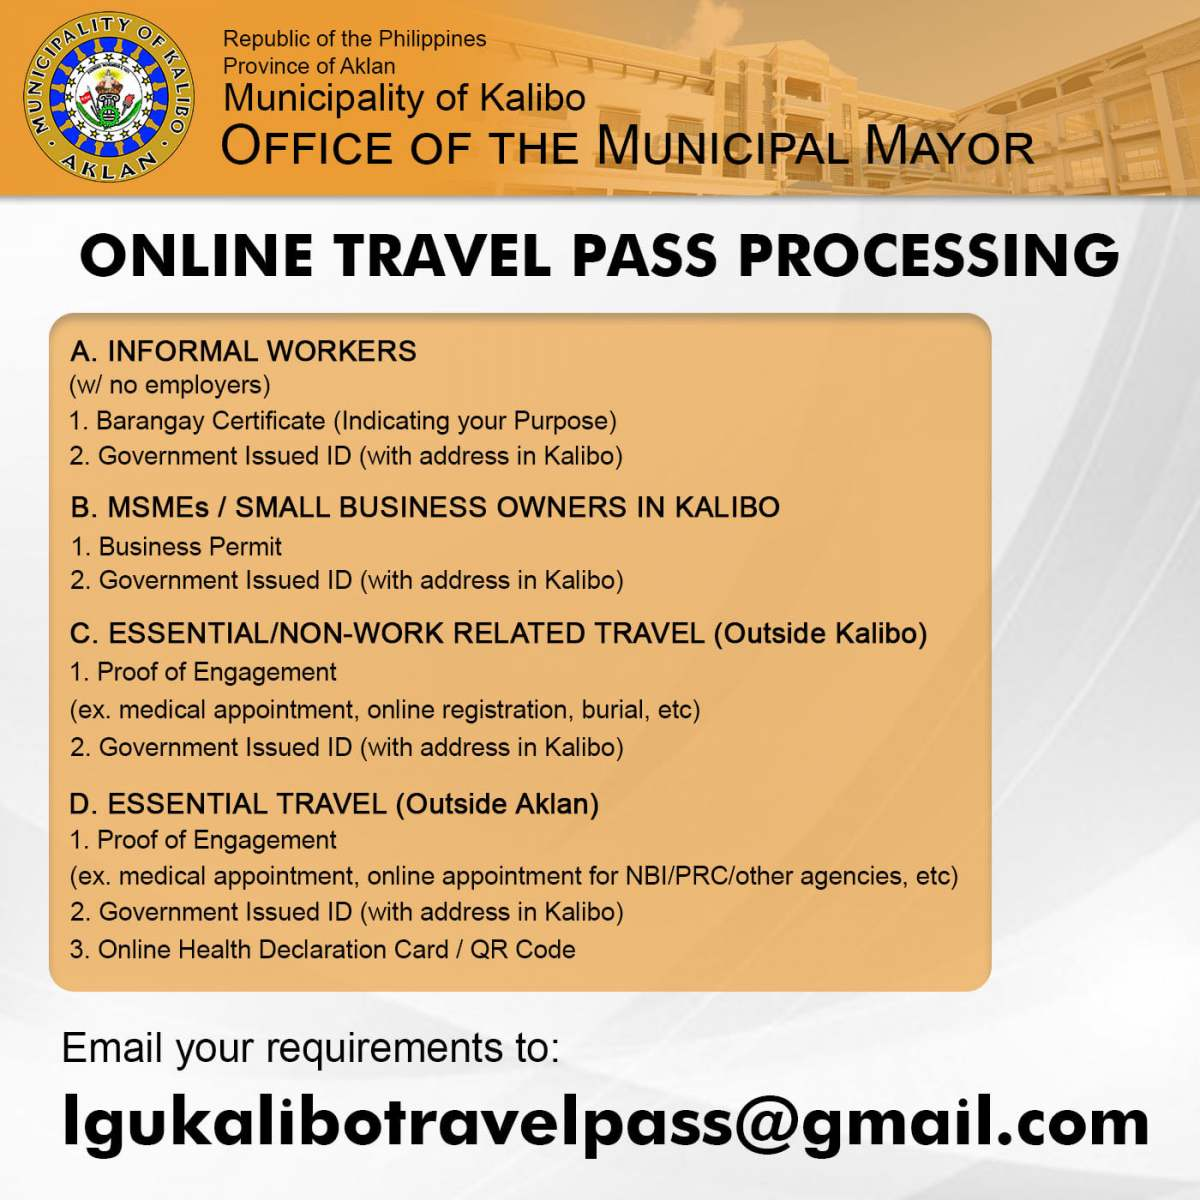 ONLINE PROCESSING OF TRAVEL PASS for INTERMUNICIPAL ESSENTIAL TRAVEL